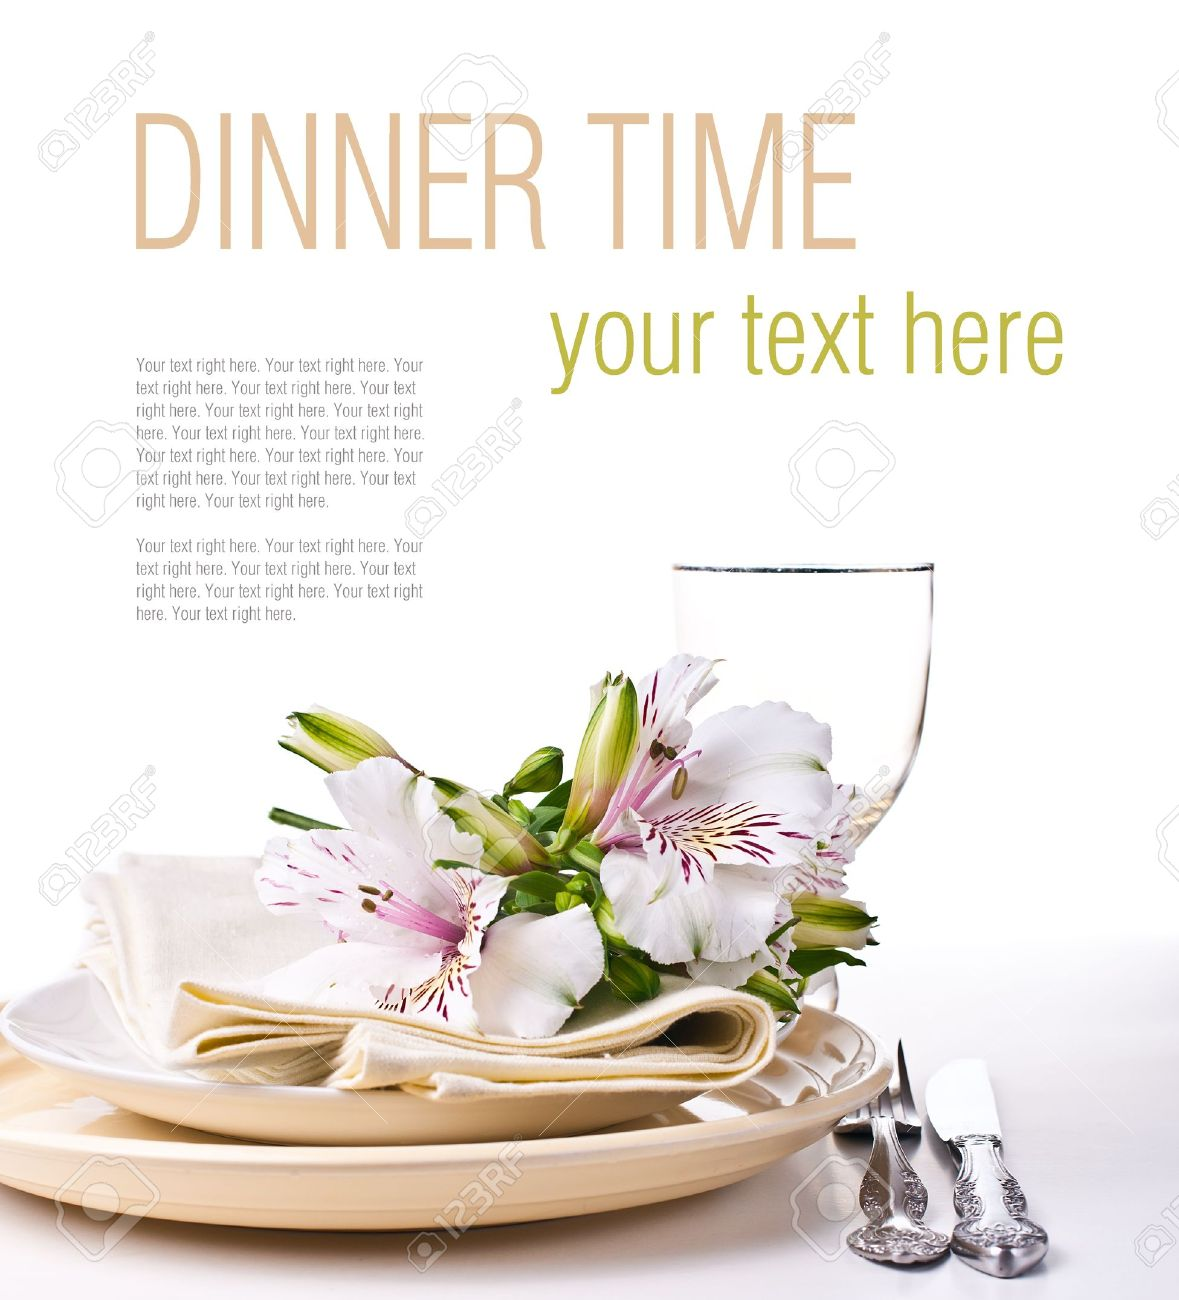 Stock Photo - Table setting with white alstroemeria flowers napkins and yellow plates close-up ready template  sc 1 st  123RF.com & Table Setting With White Alstroemeria Flowers Napkins And Yellow ...